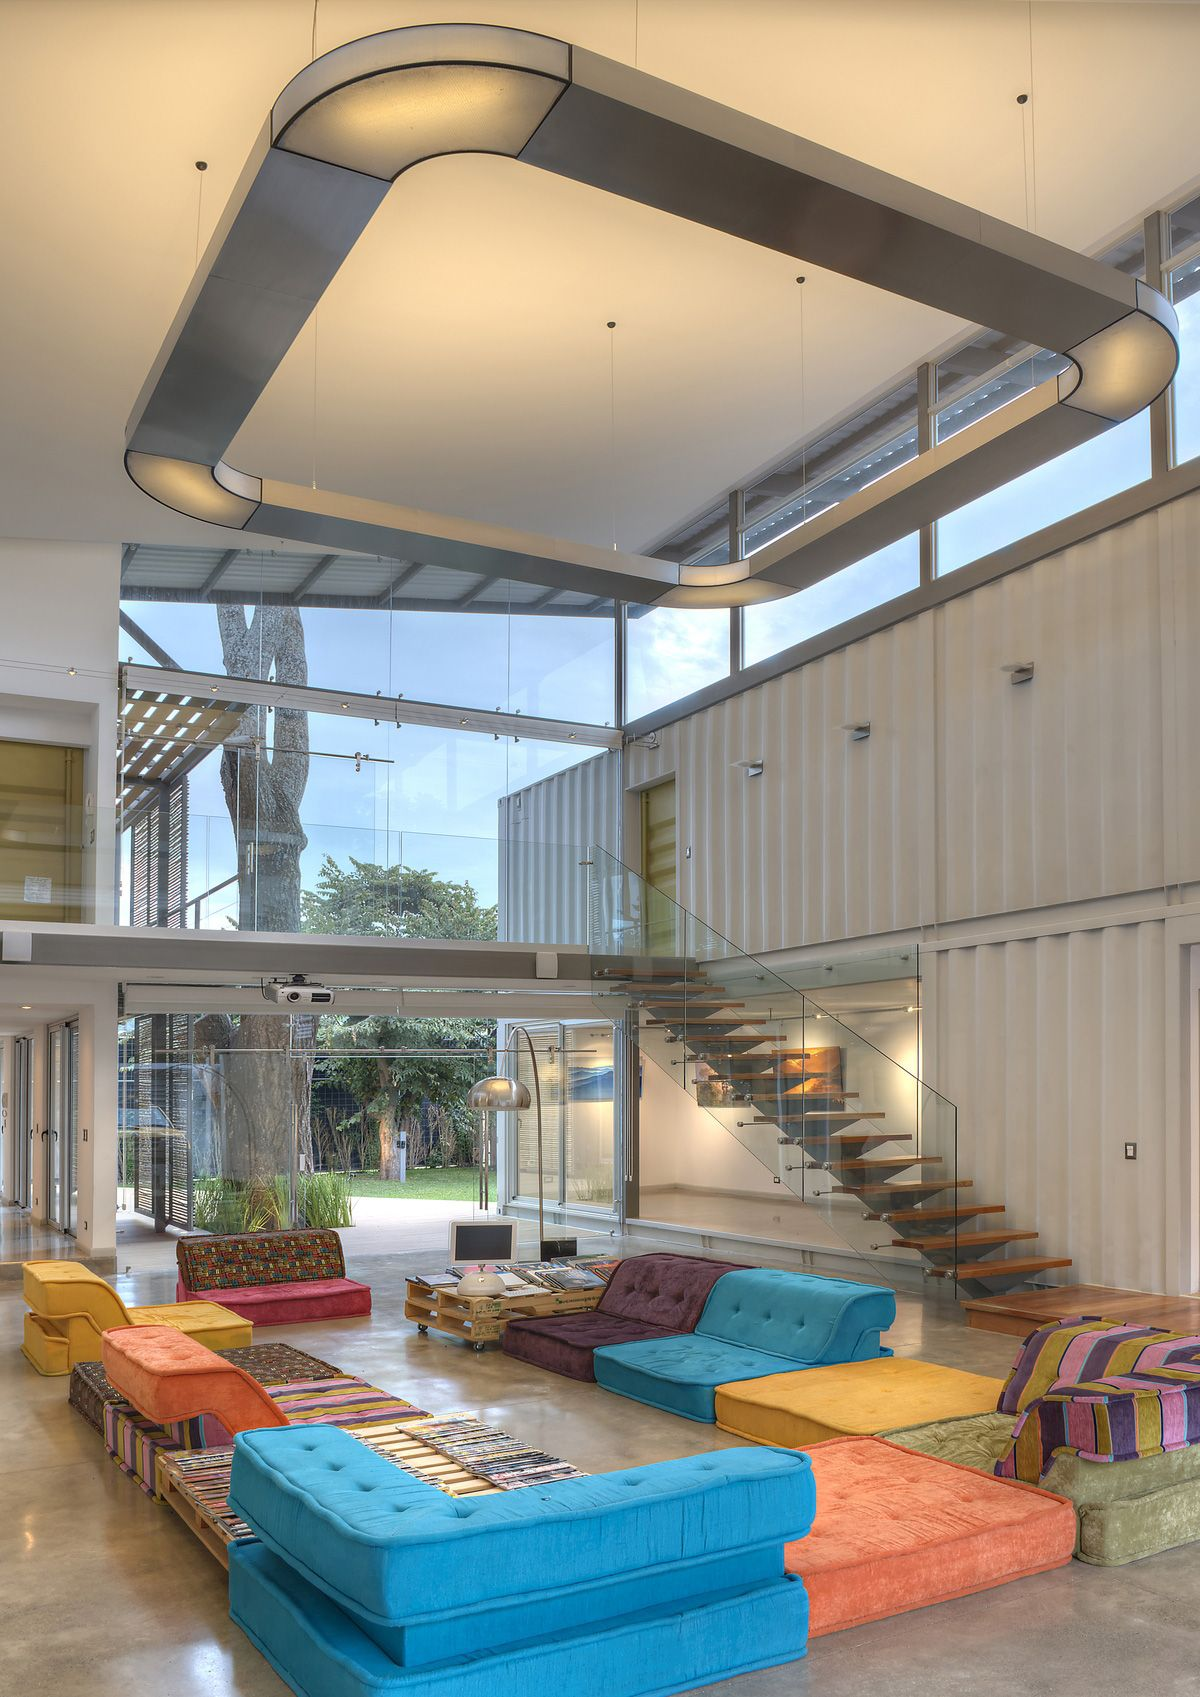 8 Shipping Containers Make Up a Stunning 2-Story Home | Container ...